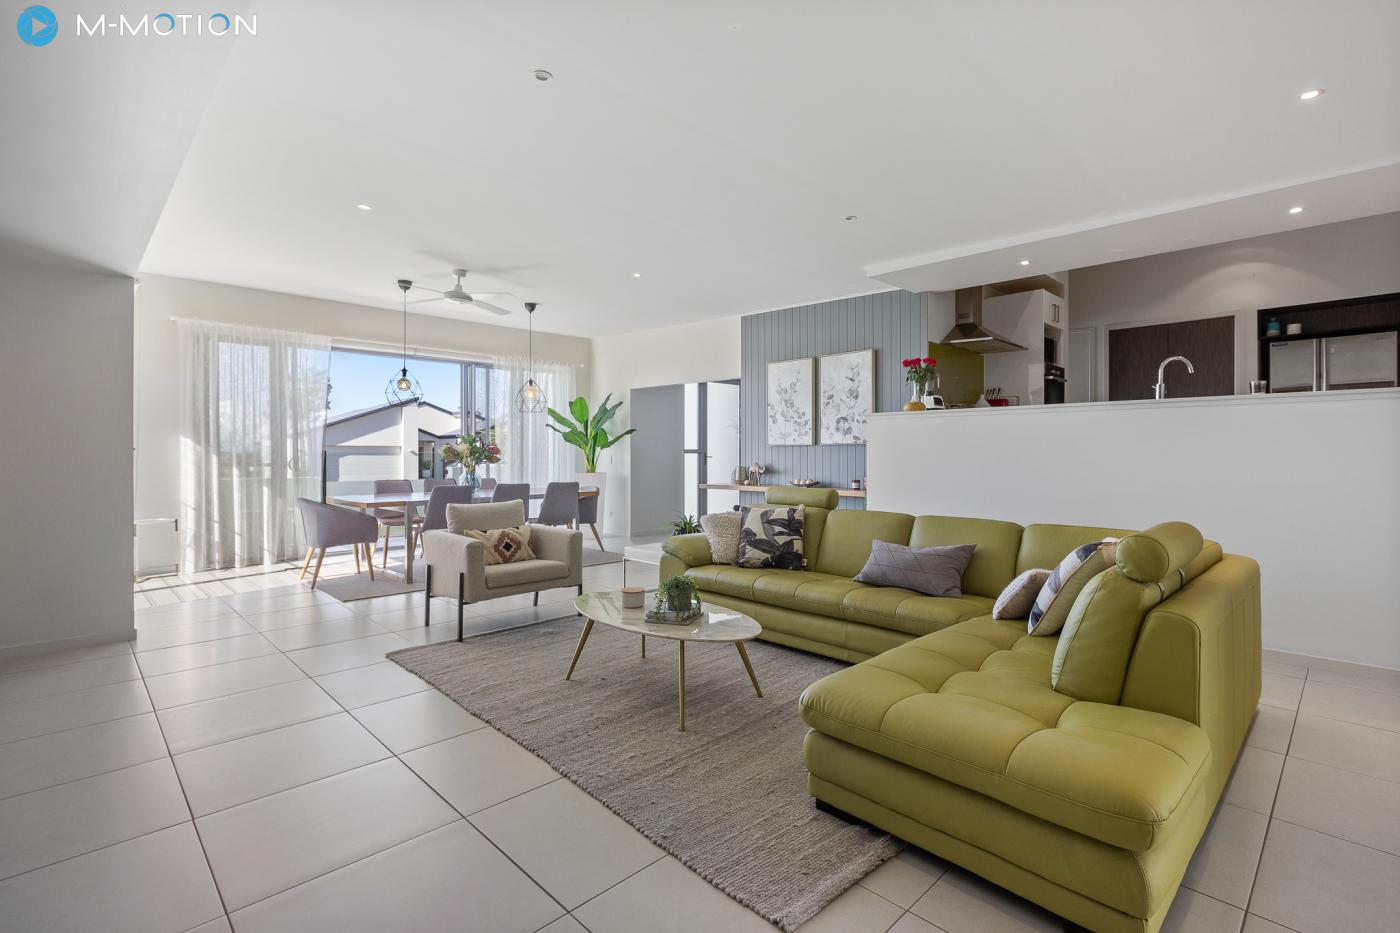 M-Motion Real Estate Agency, 27 Worchester Terrace Reedy Creek, QLD, 4227 , Peggy ford Best Real Estate Agent Gold Coast